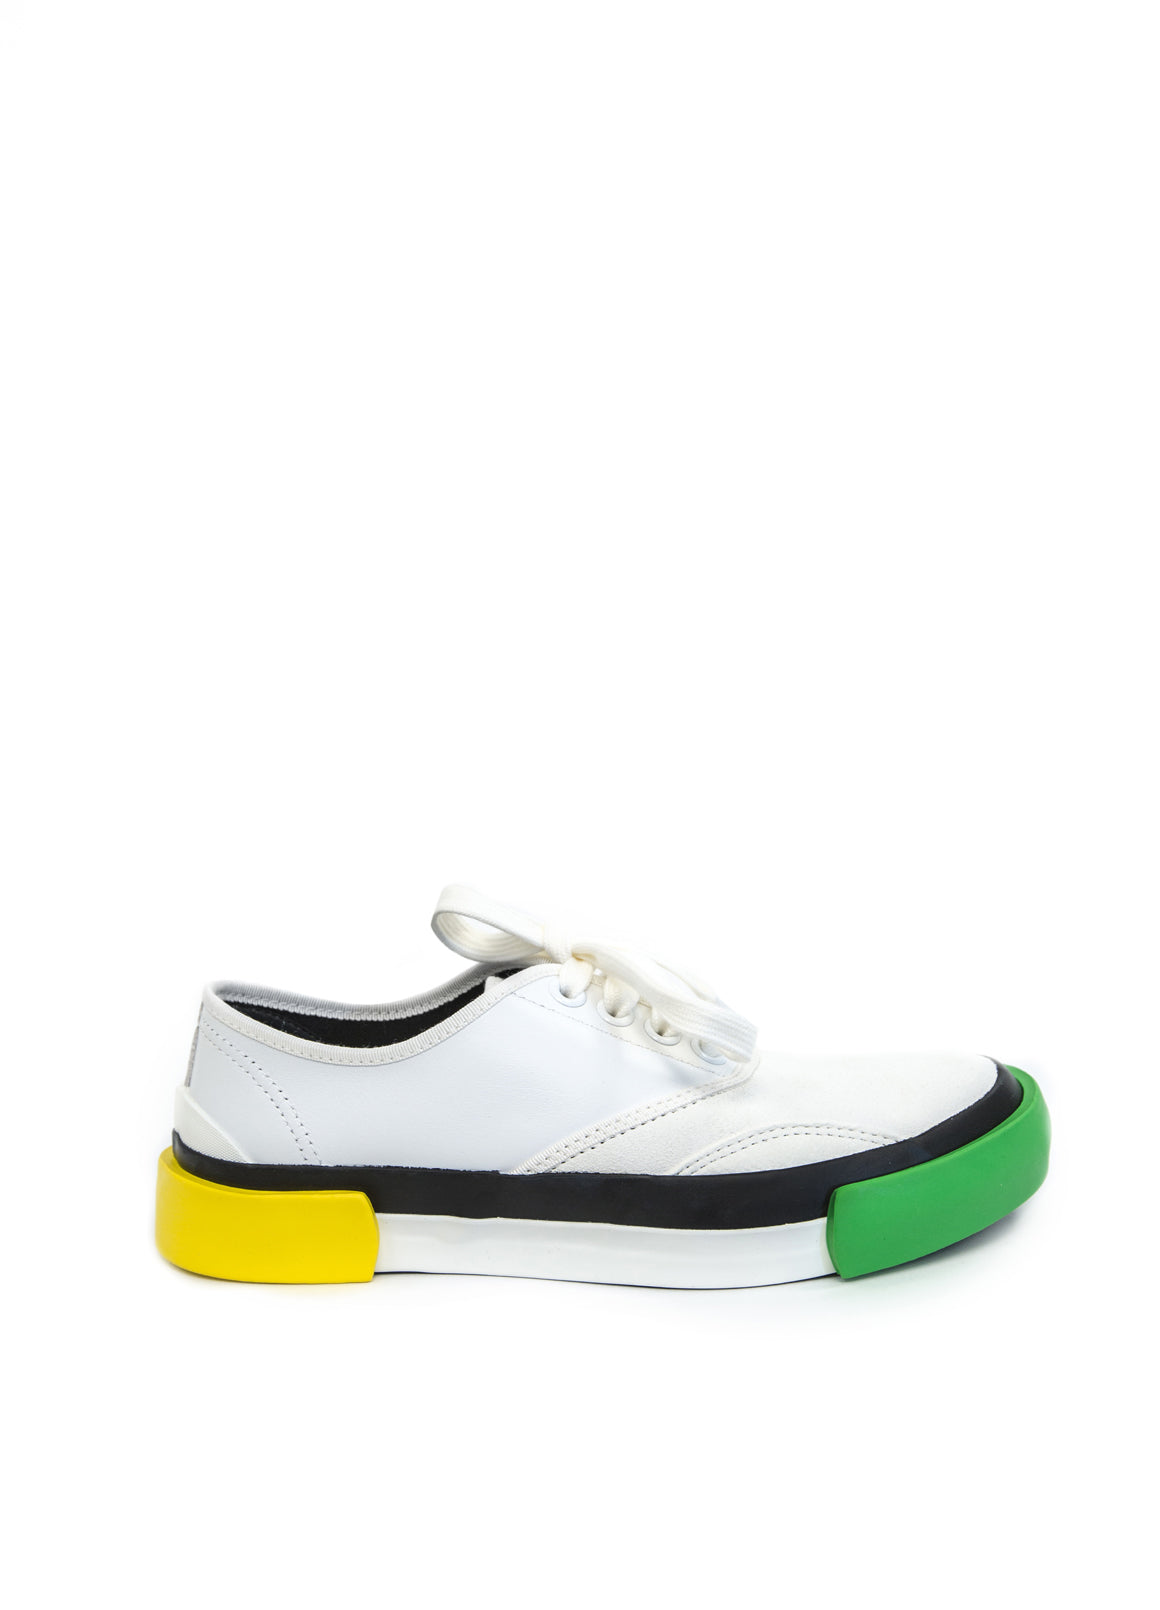 COLORBLOCK SNEAKERS